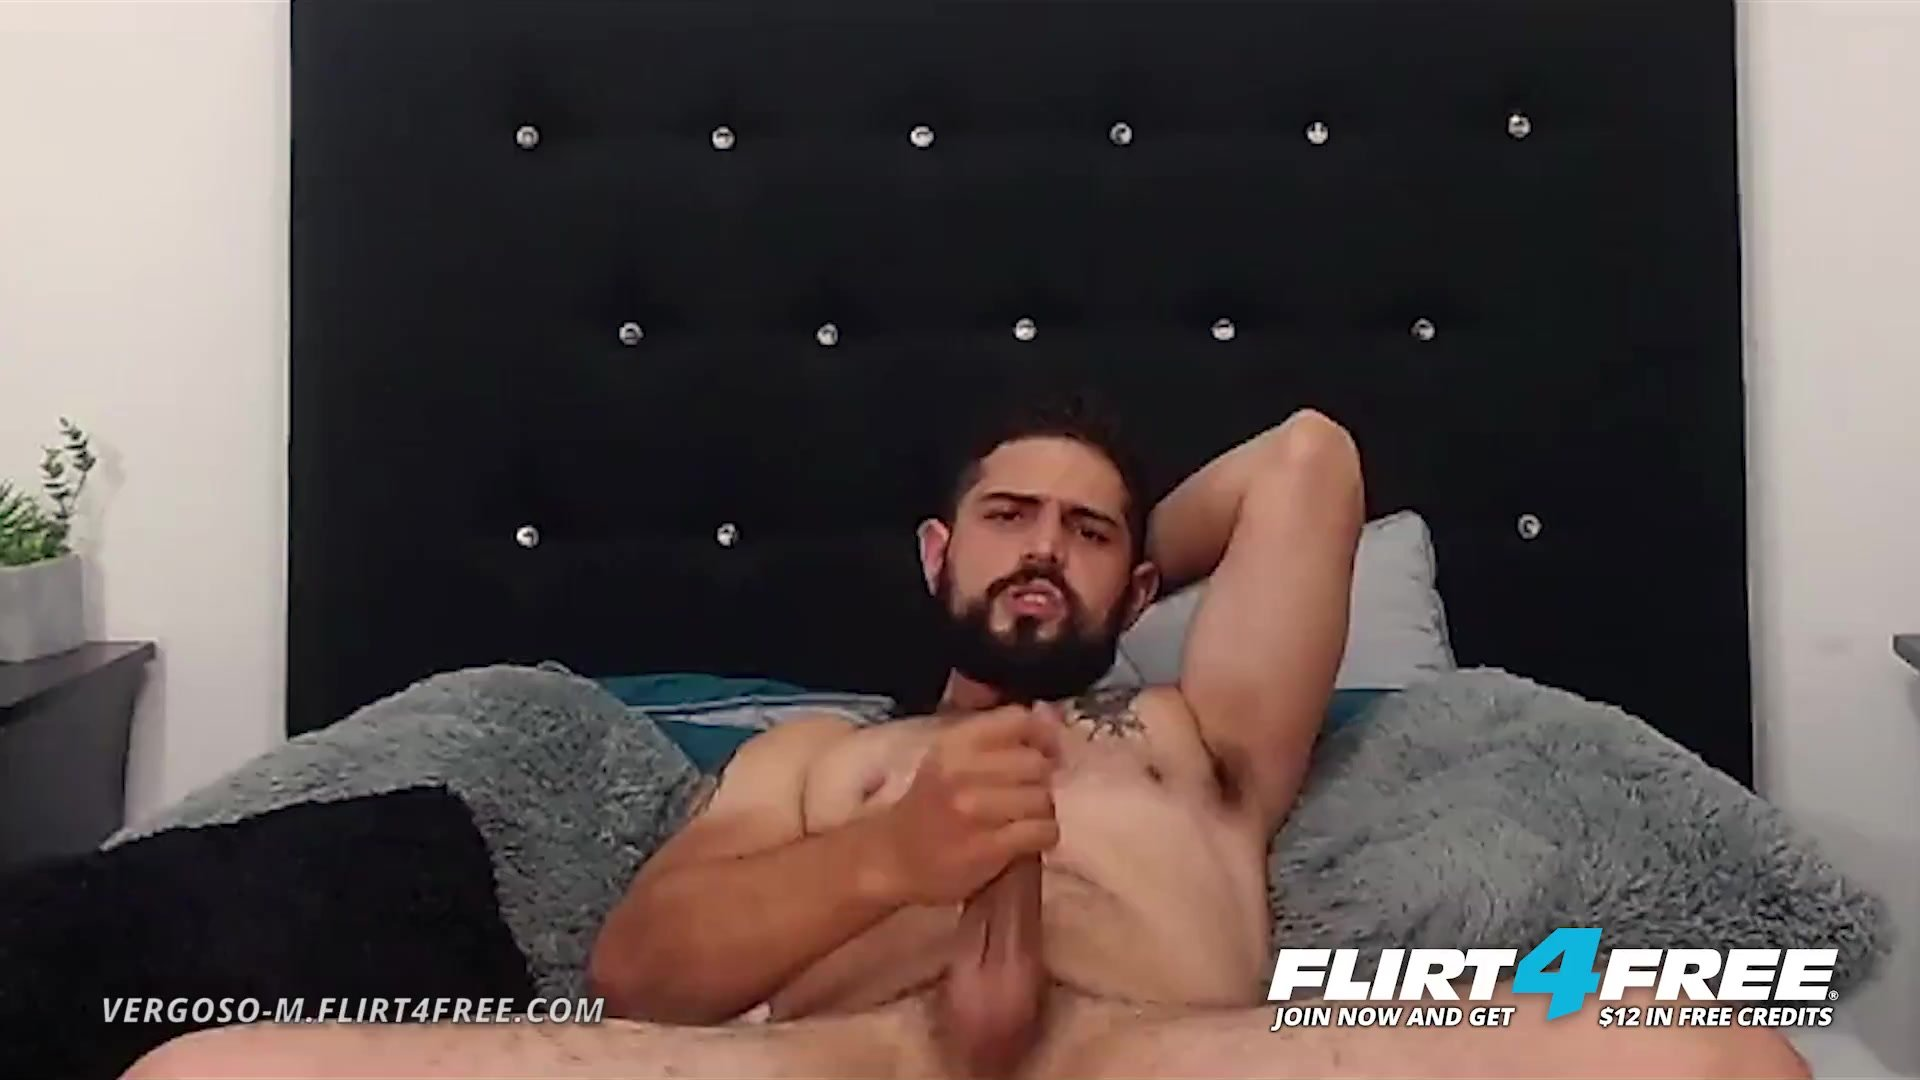 Vergoso M on Flirt4Free - Bearded Latino with Big Uncut Cock Blows His Load